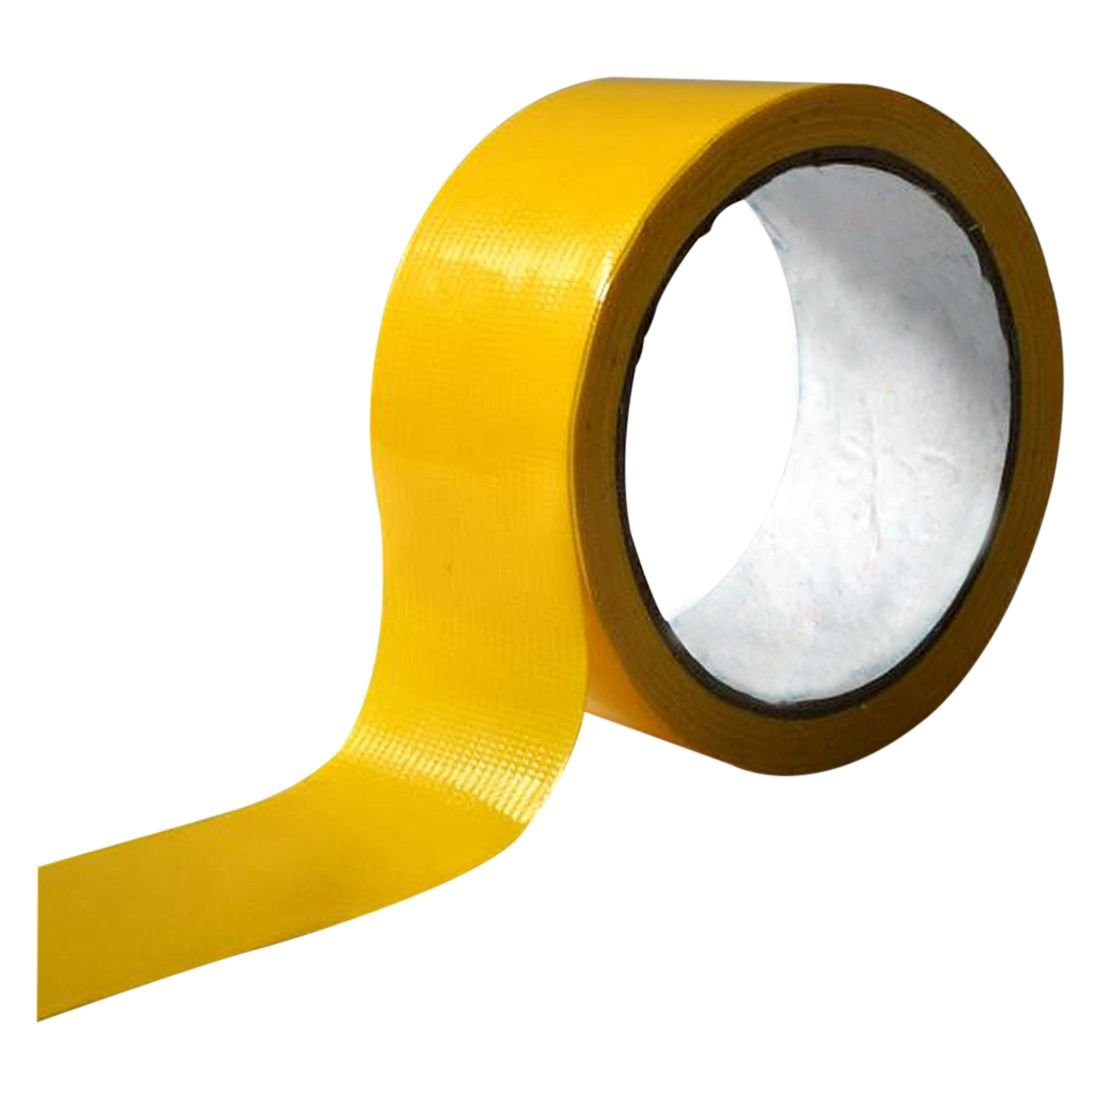 SODIAL(R) Hot melt adhesive Tape Pipeline Waterproof Tape 48mm50m, Yellow